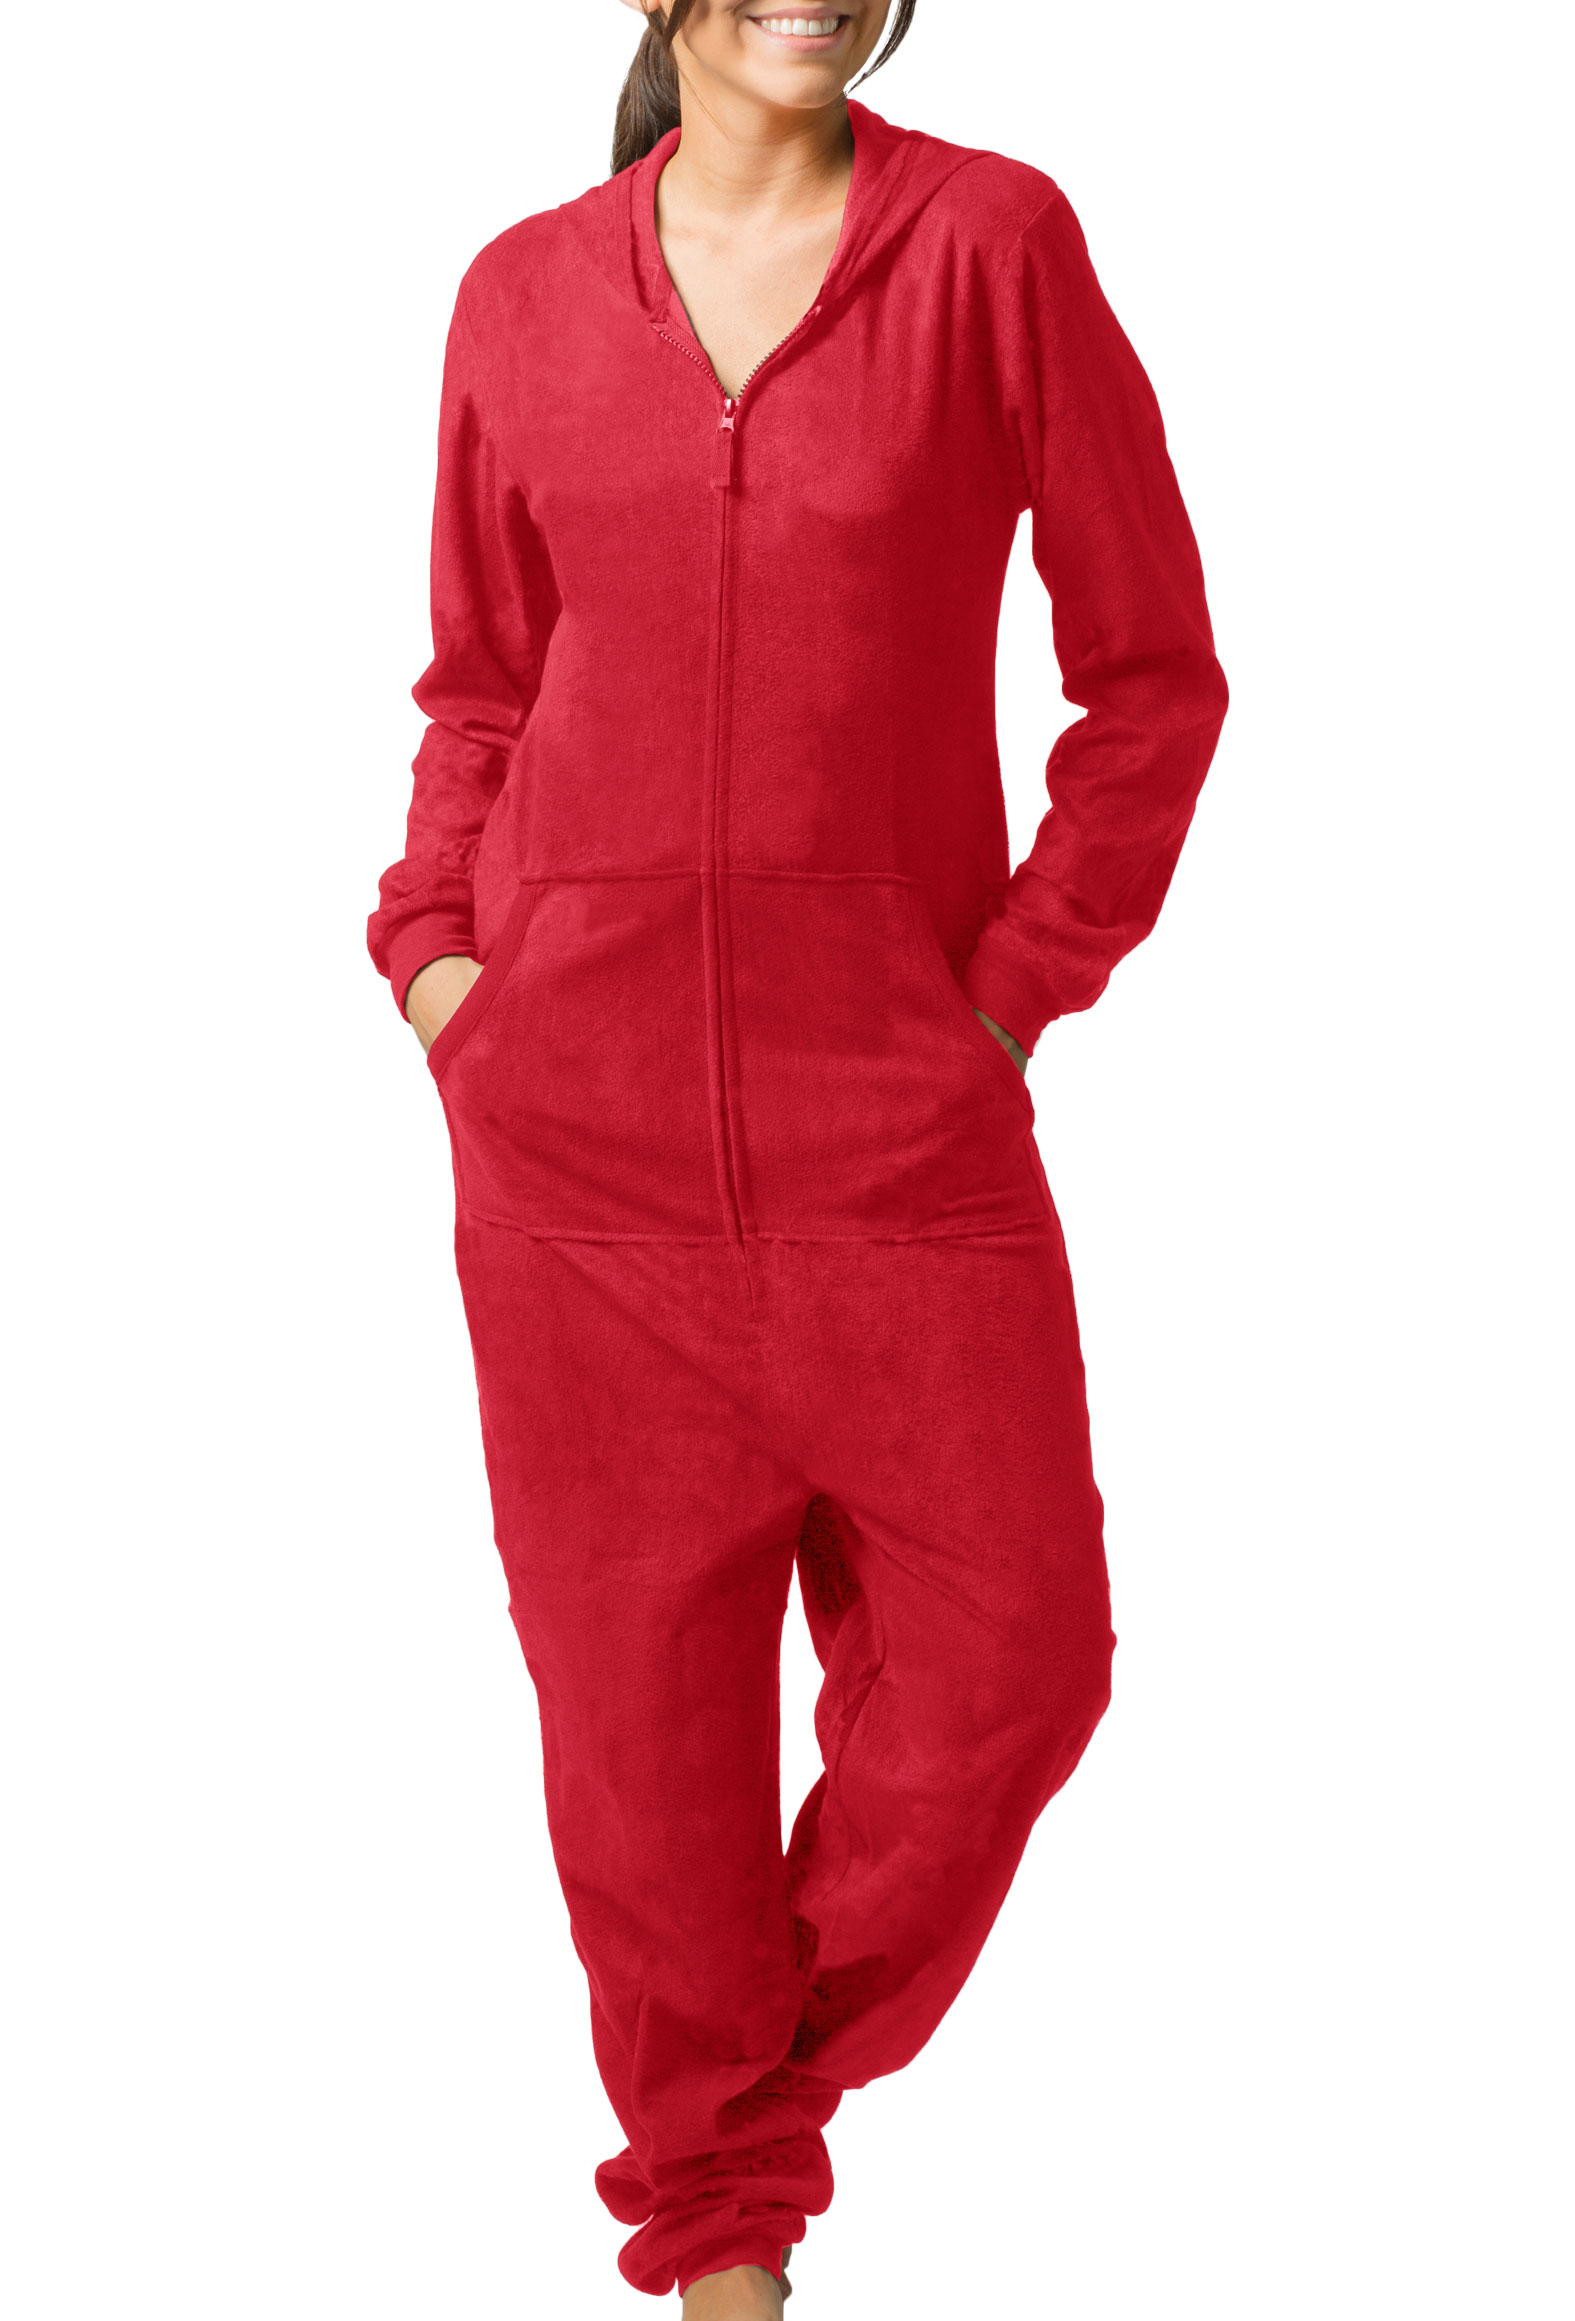 Boxercraft Adult Polar Fleece Union Suit